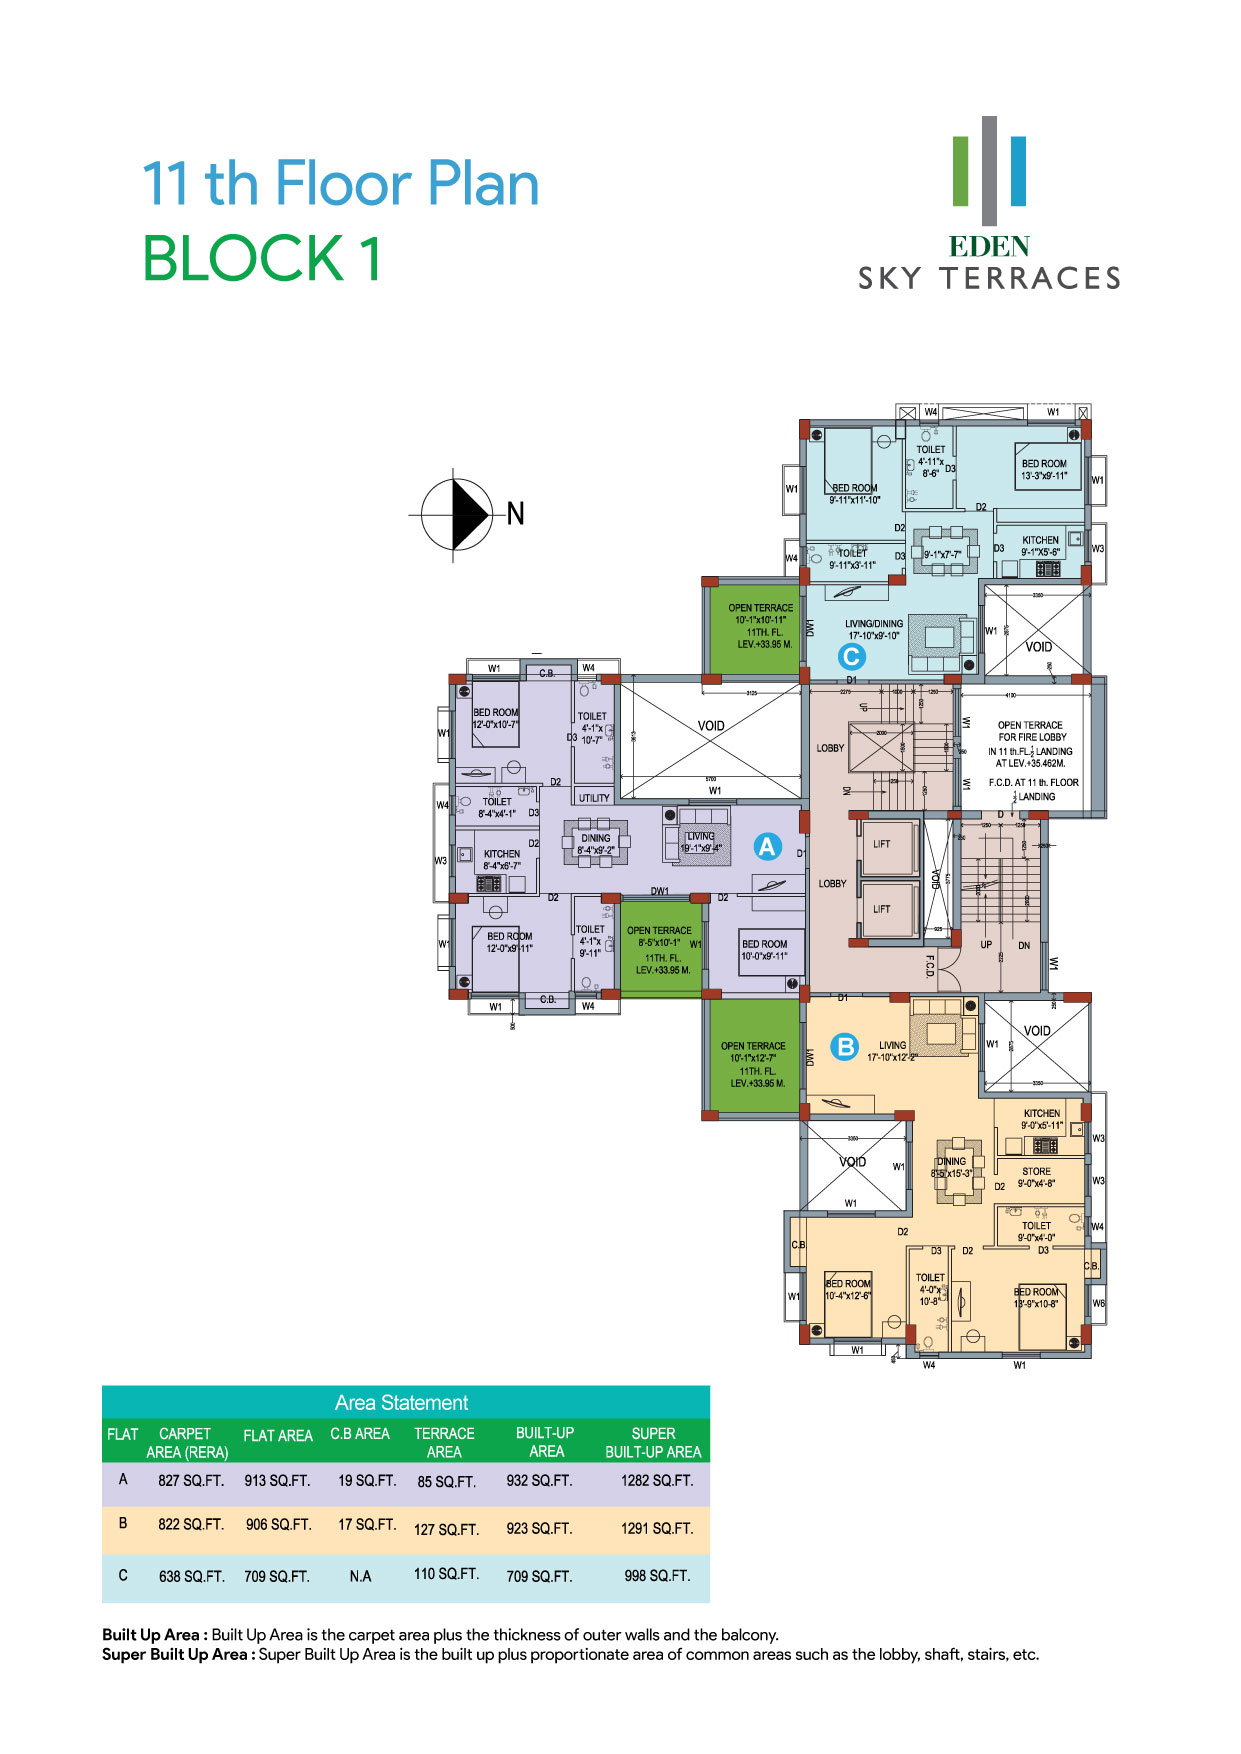 Eden Sky Terraces - Block 1, 11th Floor Plan